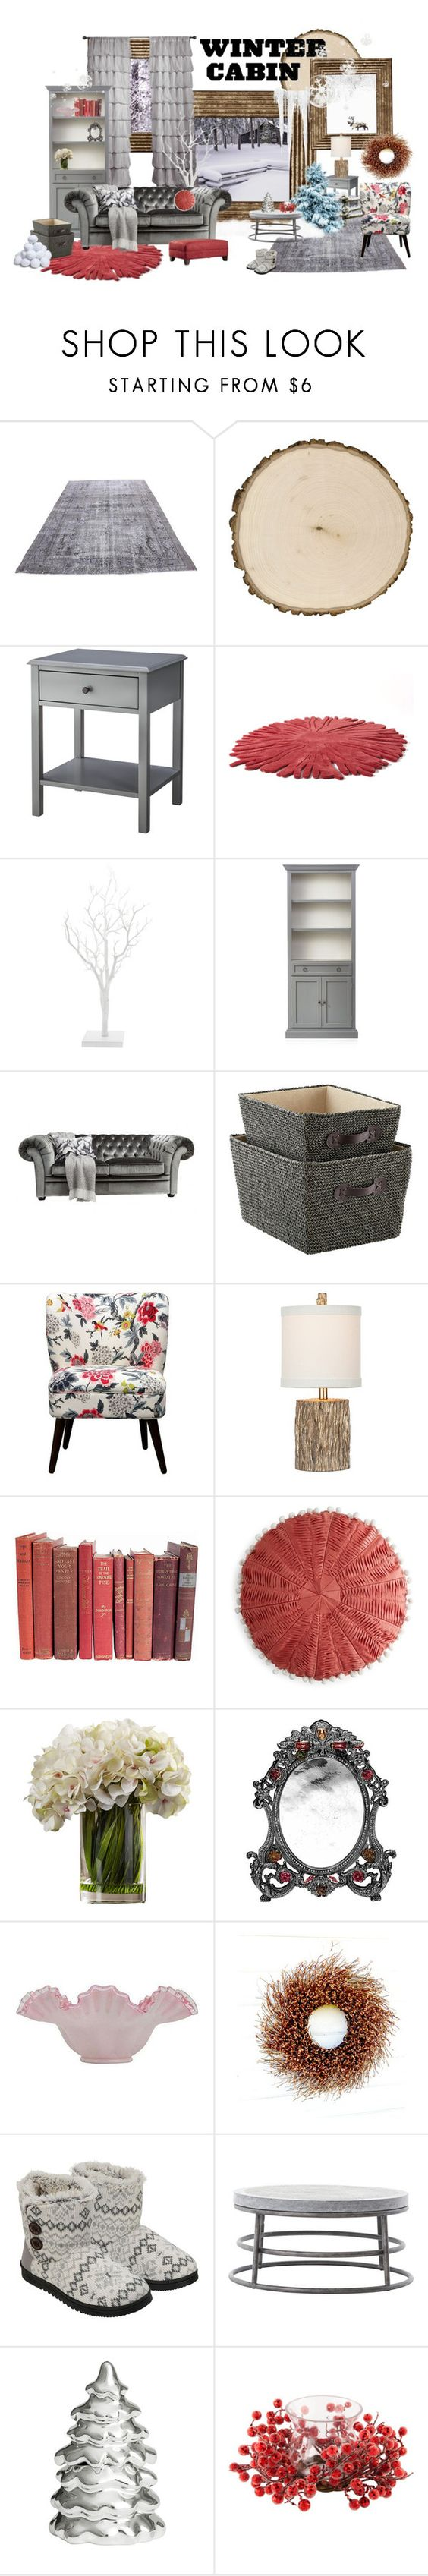 Threshold home decor shop for threshold home decor on polyvore -  Winter Cabin By Jane Pez Liked On Polyvore Featuring Interior Interiors